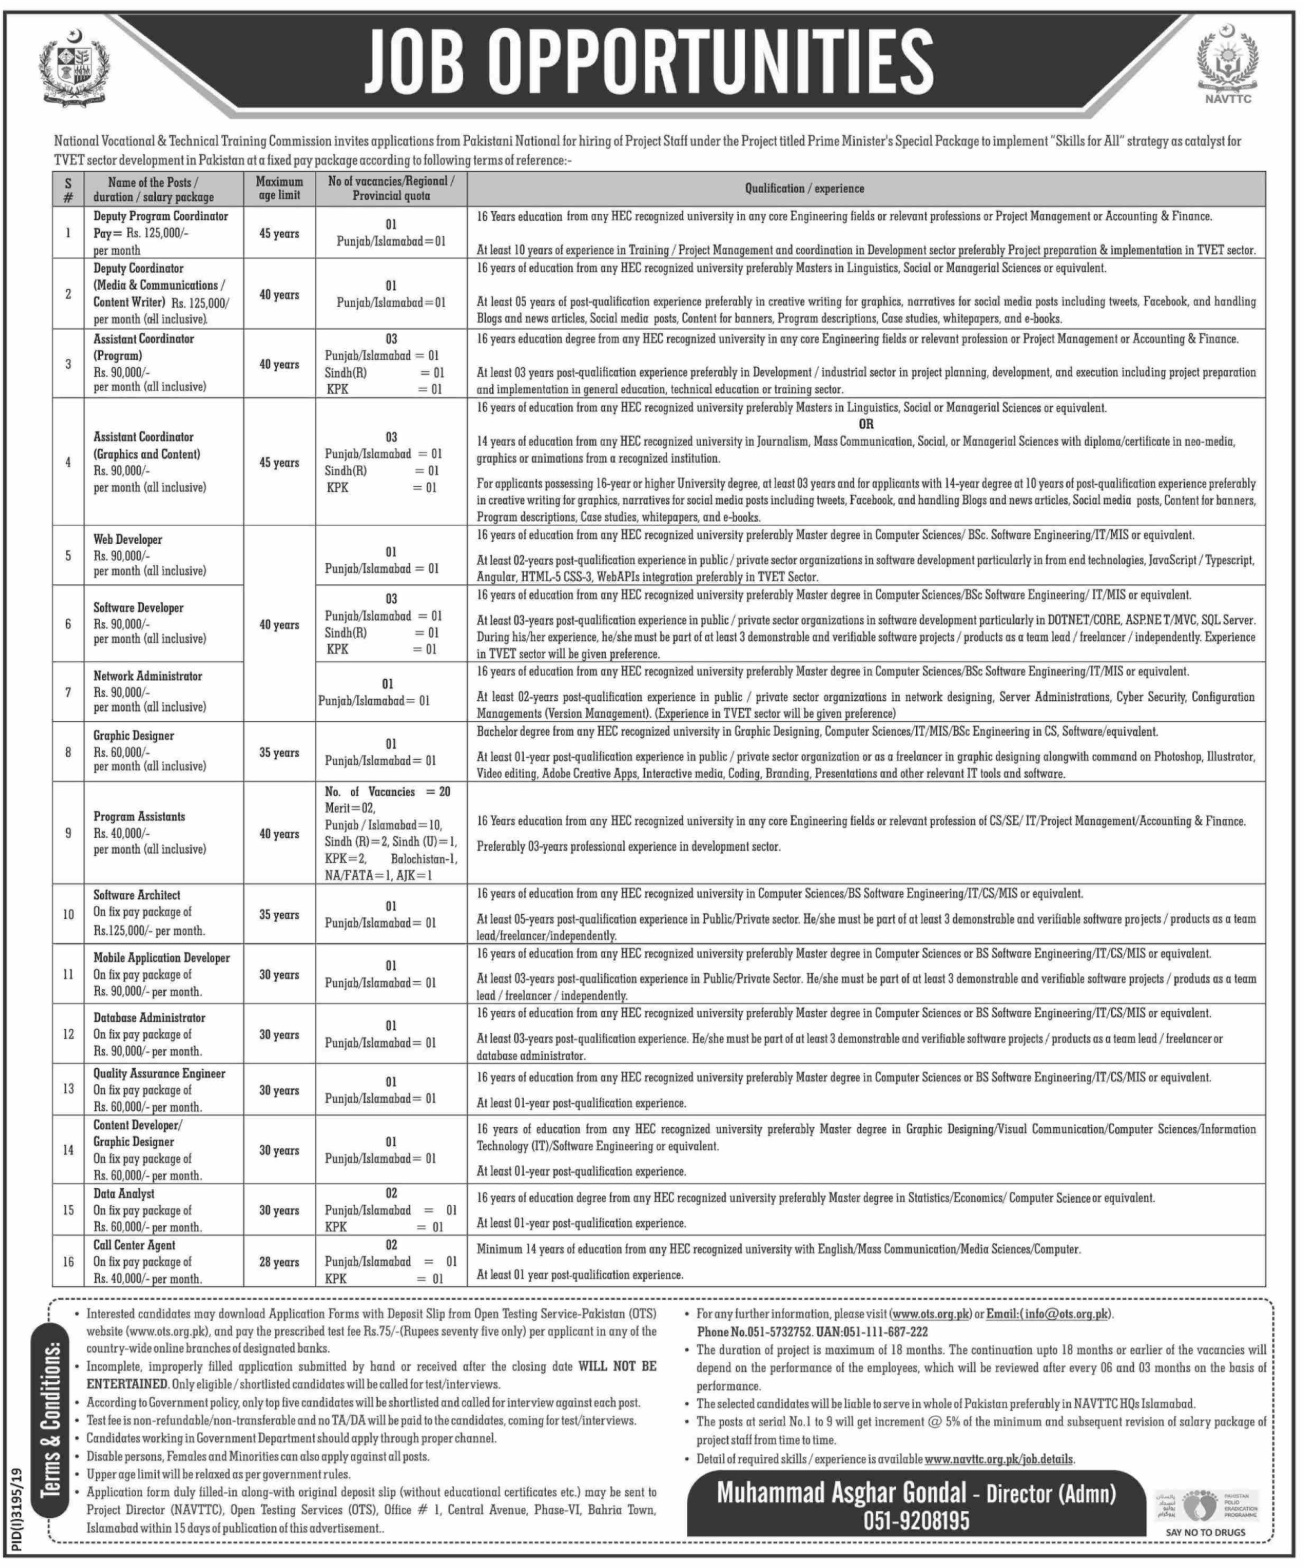 National Vocational & Technical Training Commission NAVTTC Islamabad Jobs 2019 via OTS Testing Service